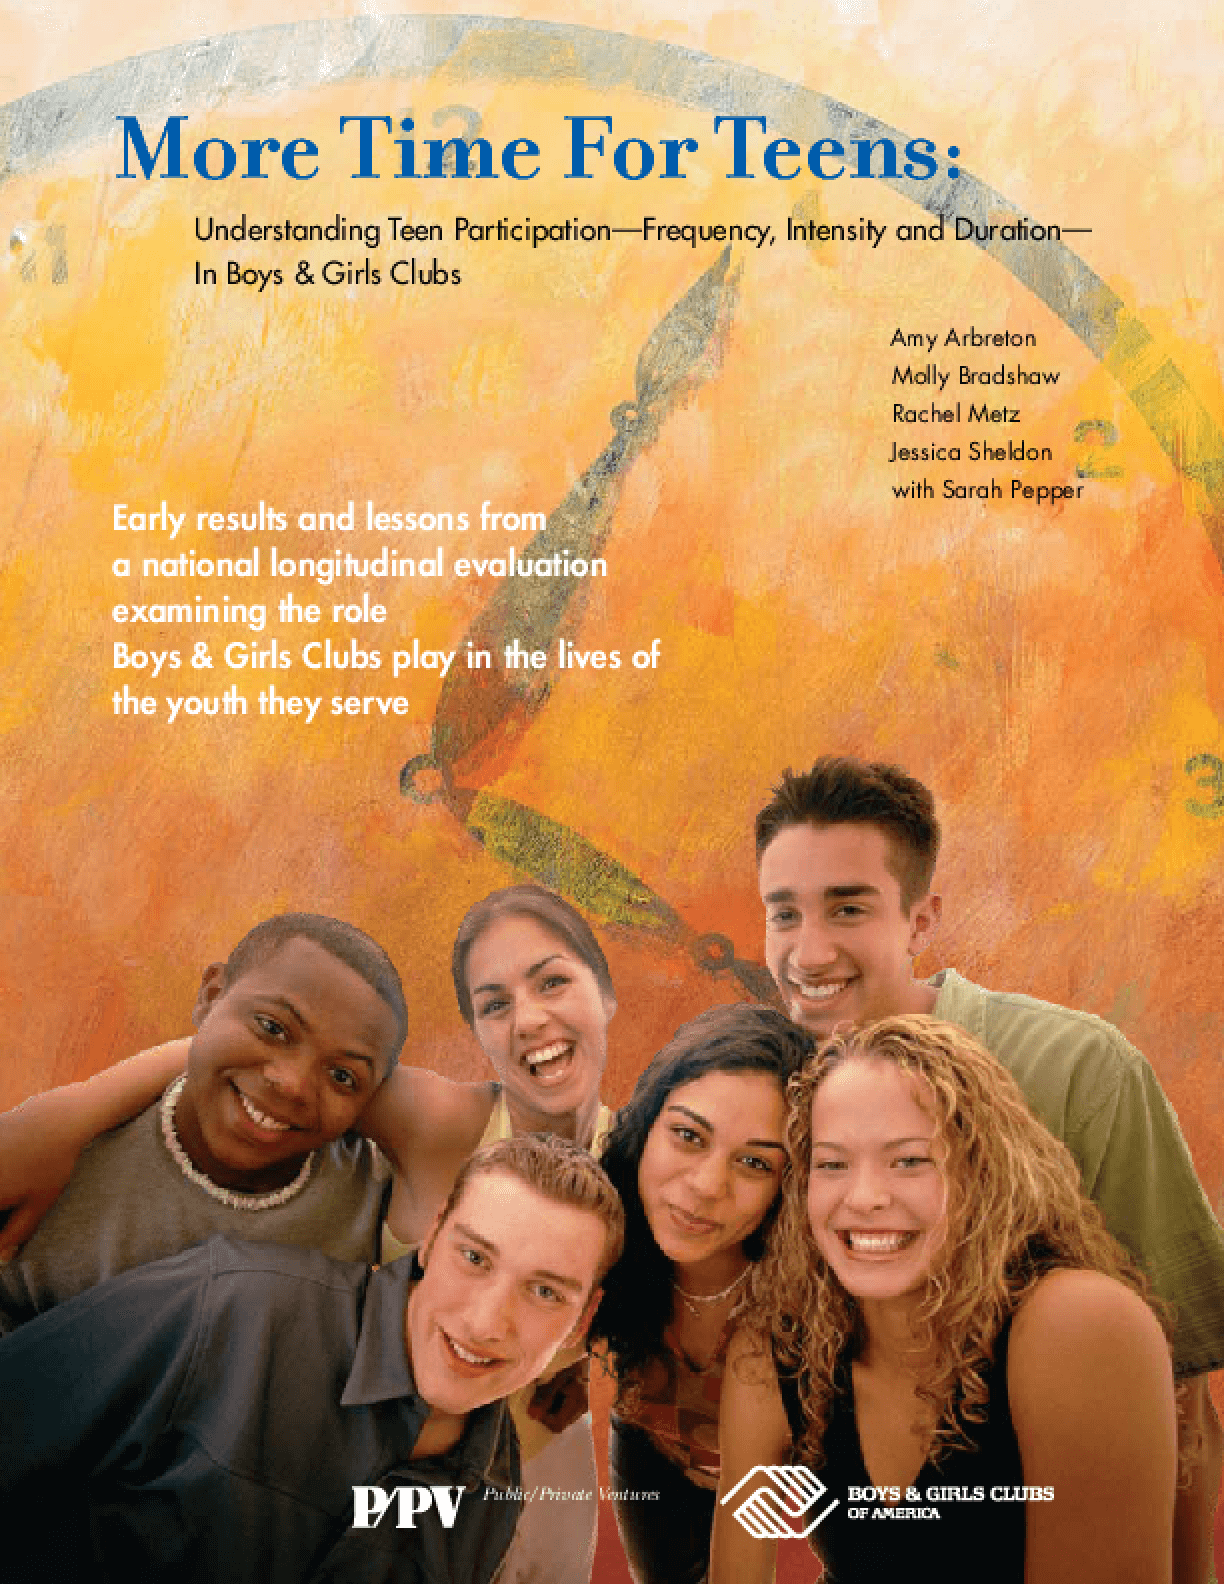 More Time For Teens: Understanding Teen Participation -- Frequency, Intensity and Duration -- In Boys & Girls Clubs Executive Summary